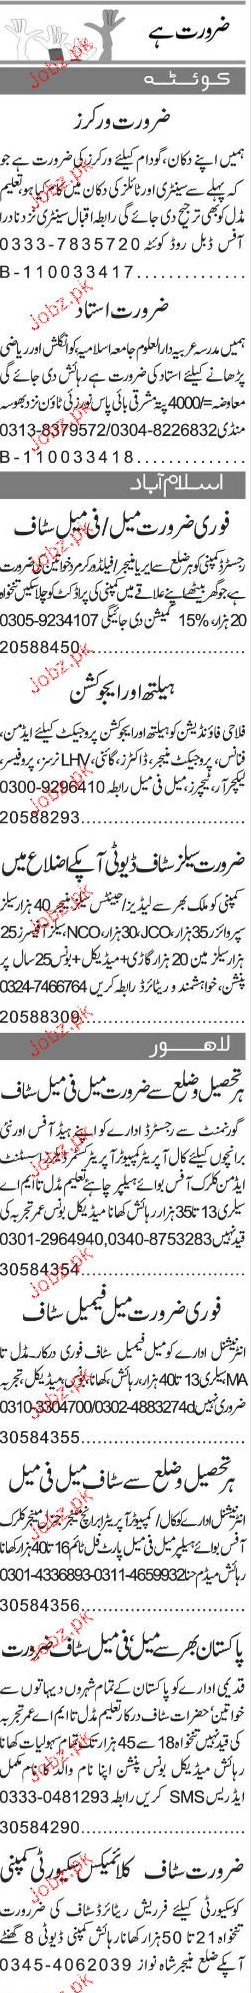 Workers, Salesmen, Area Managers Job Opportunity